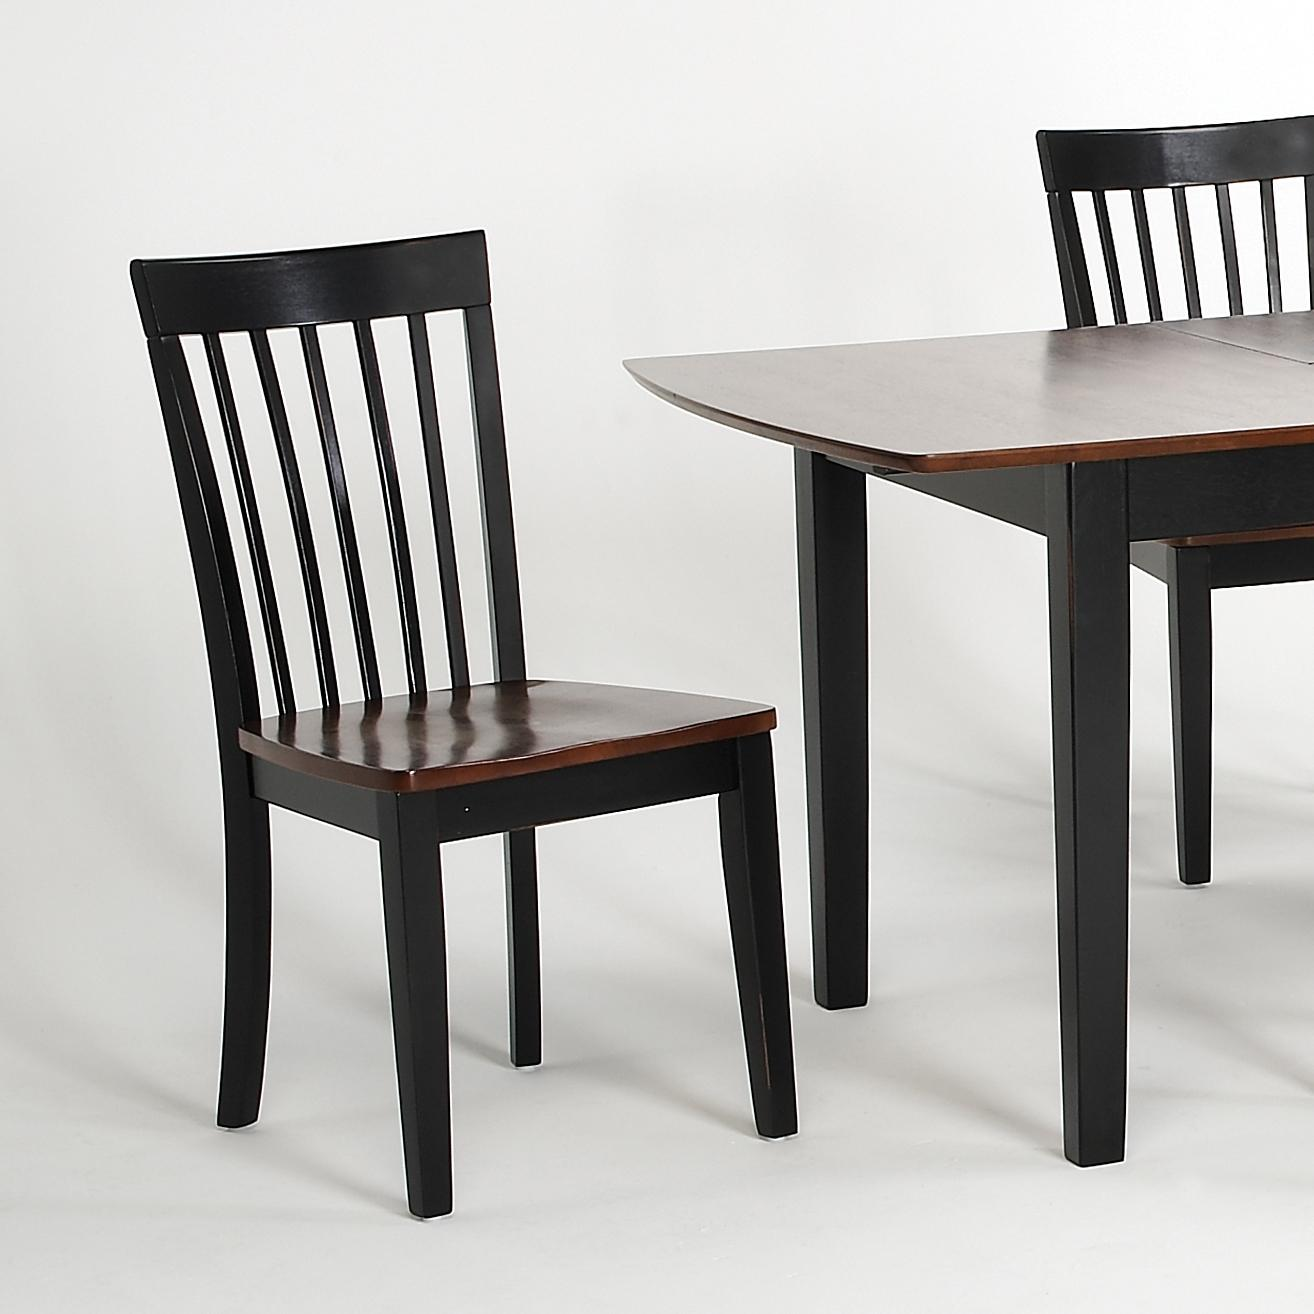 Newbury and Kensington Contemporary Dining Sets Side Chair by Amesbury Chair at Dinette Depot